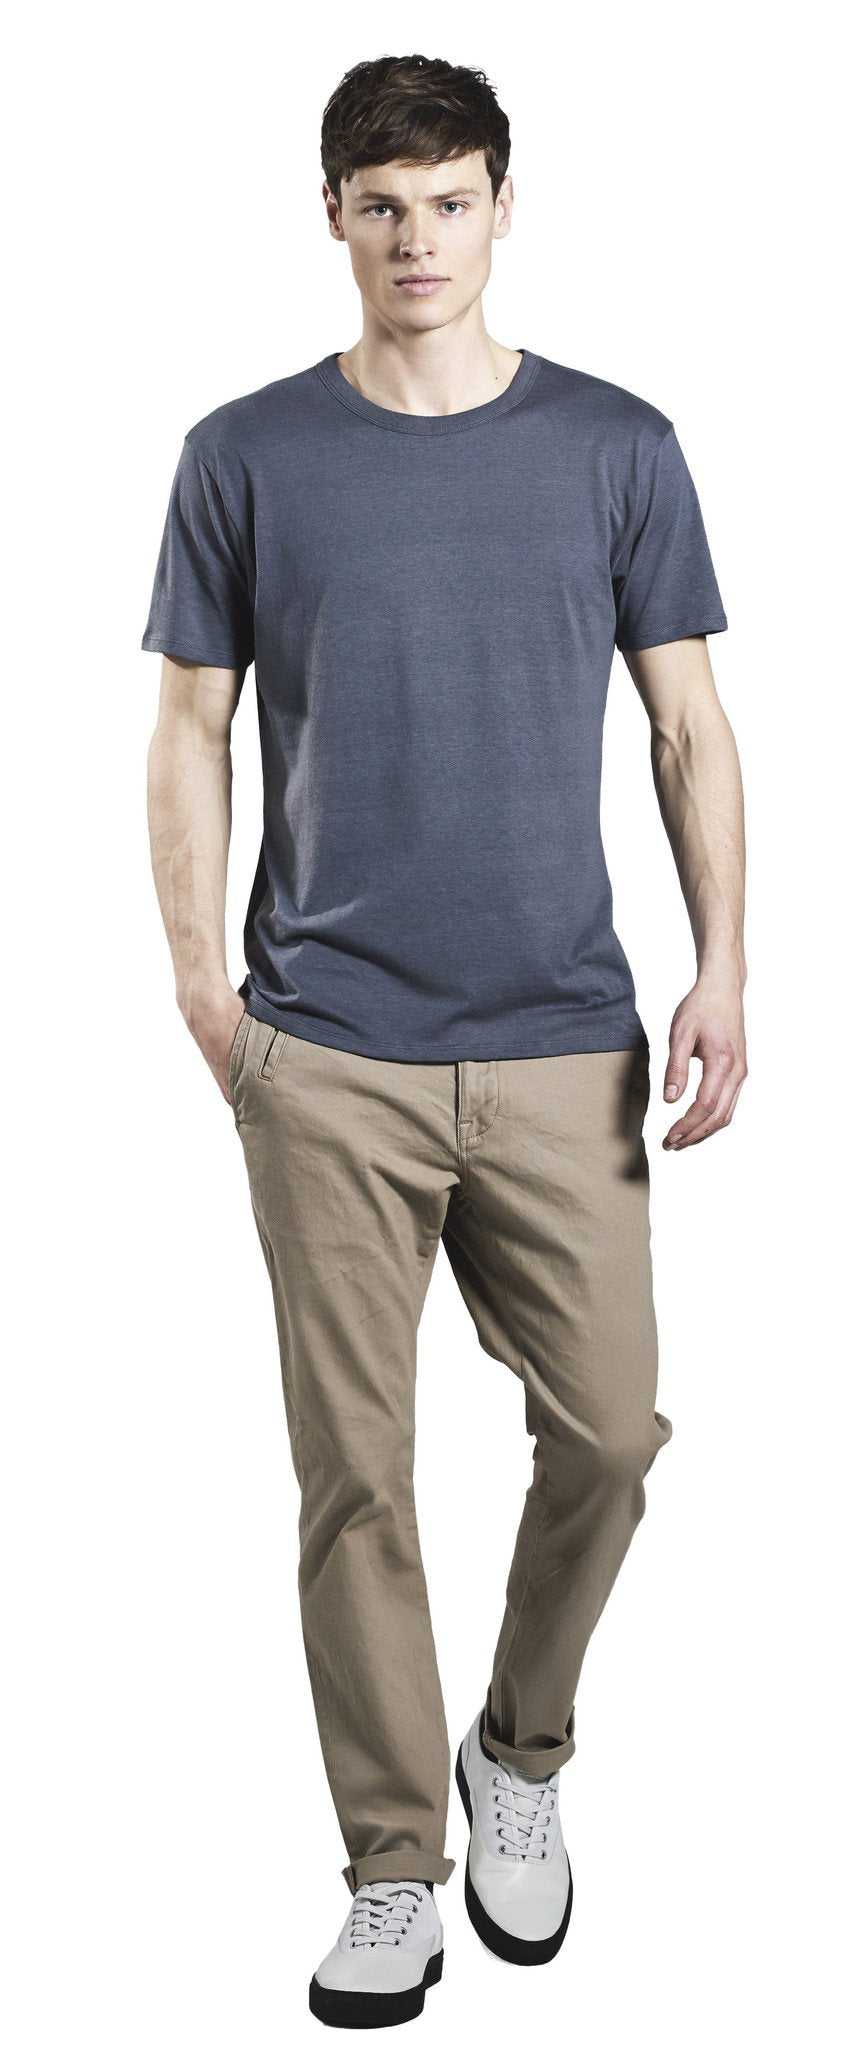 EP42 | MEN'S TENCEL BLEND T-SHIRT